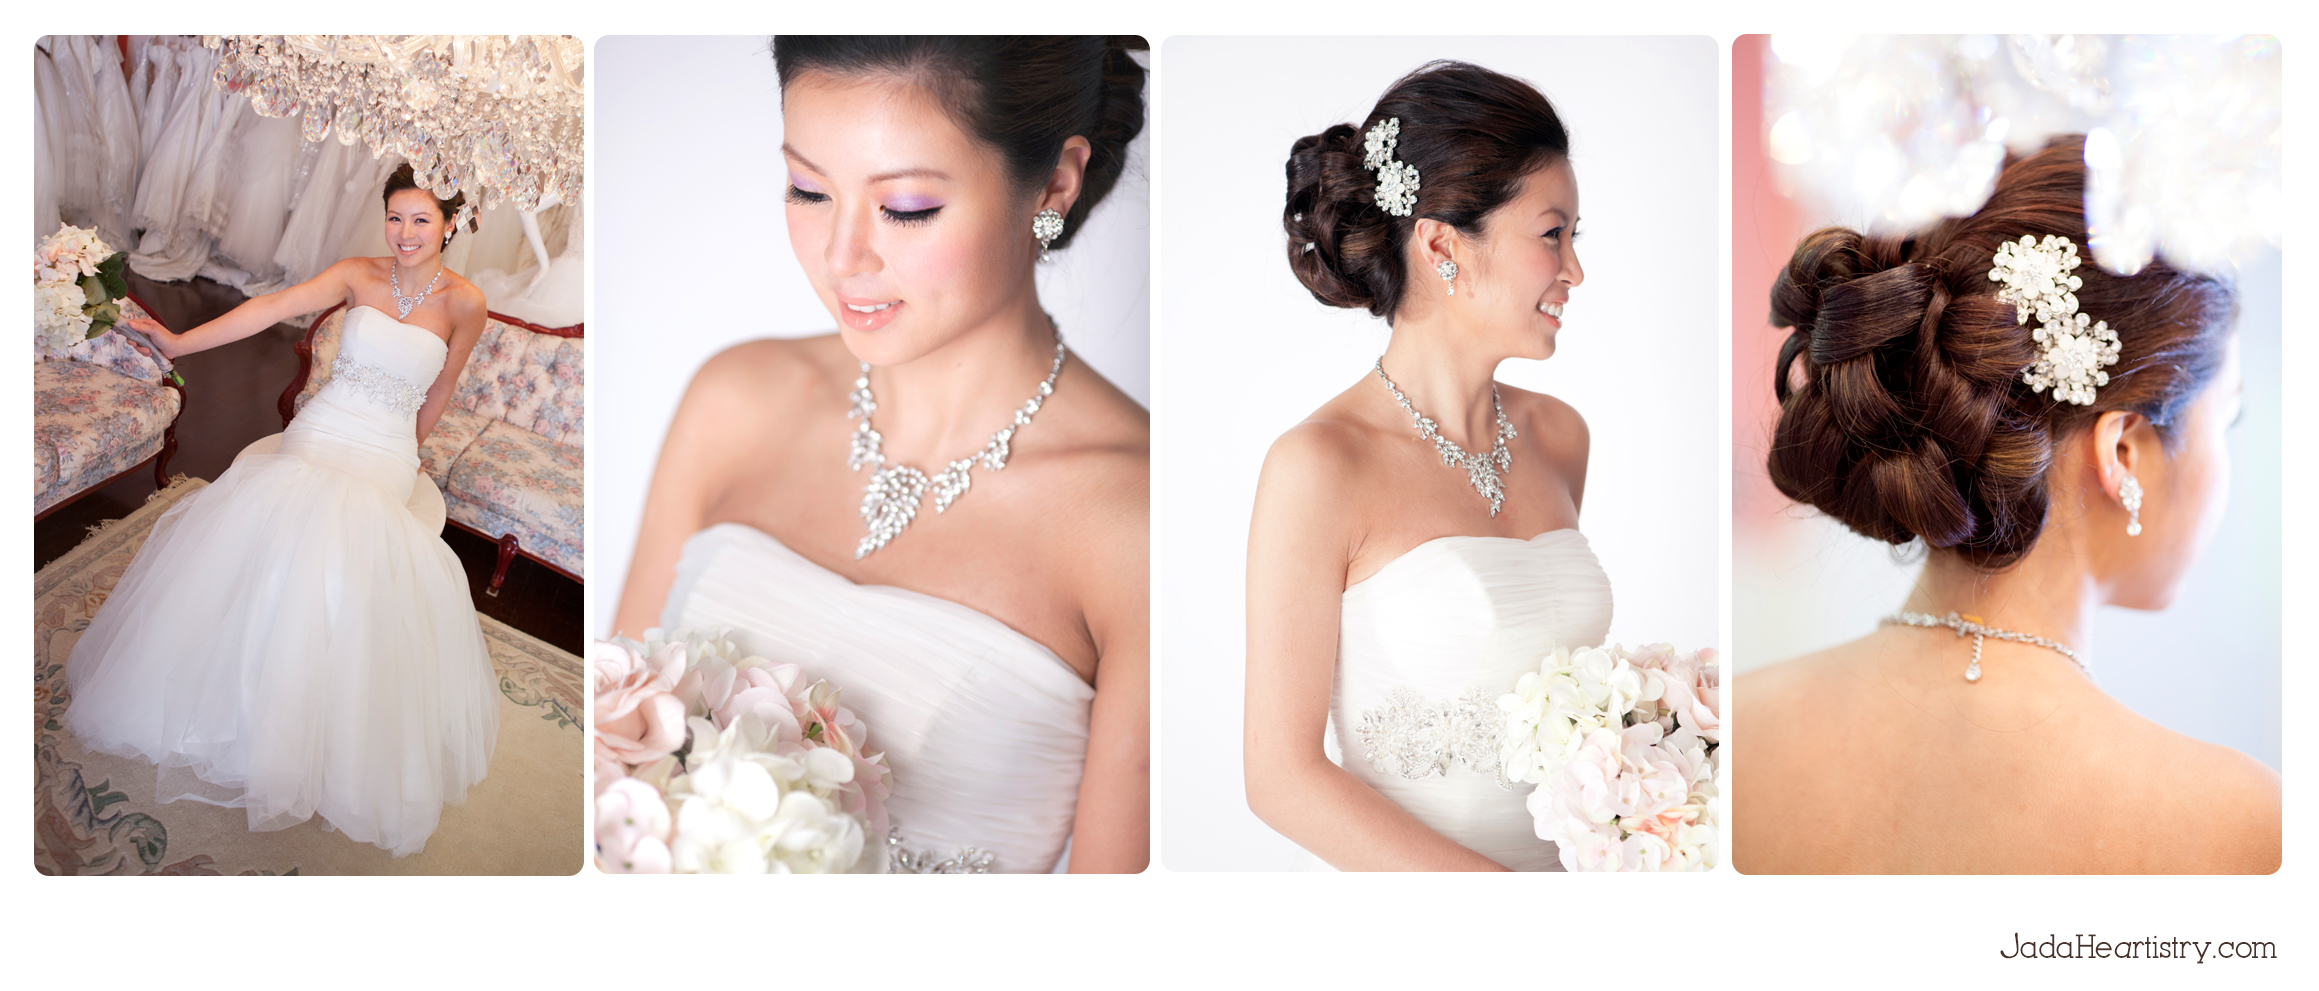 Jada Heartistry Portfolio Gta Toronto Bridal Makeup And Hair